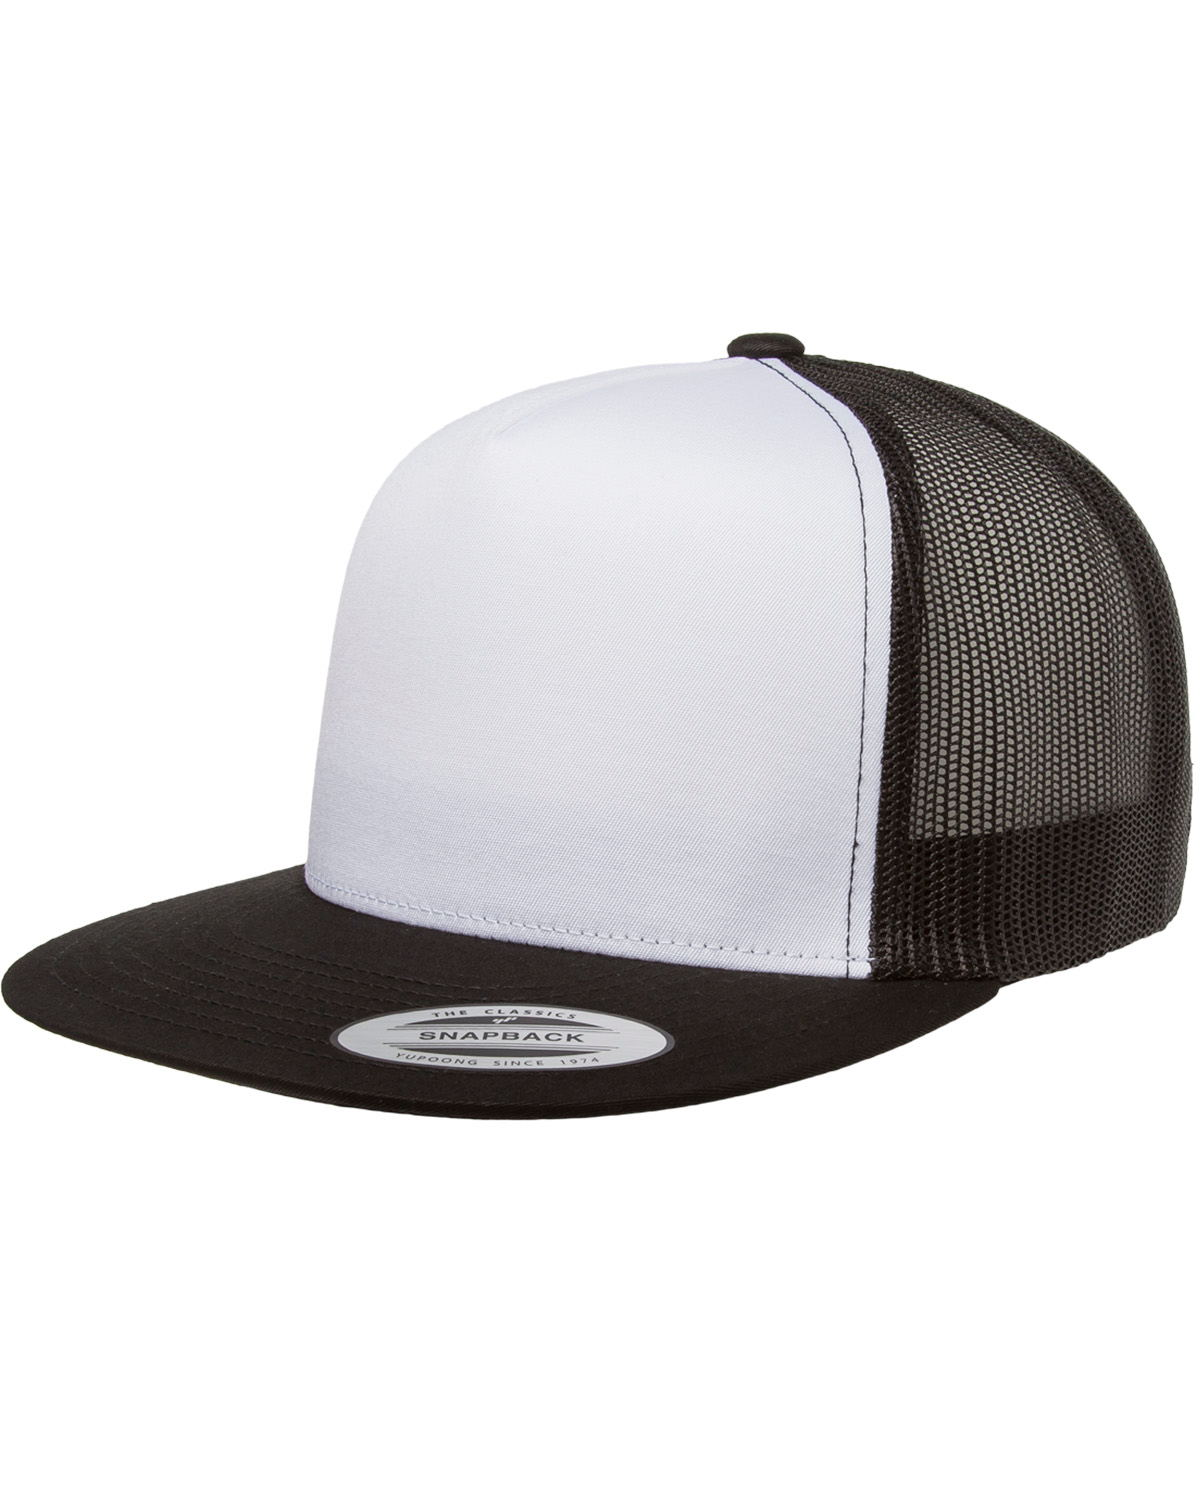 Yupoong 6006W - Adult Classic Trucker with White Front Panel Cap